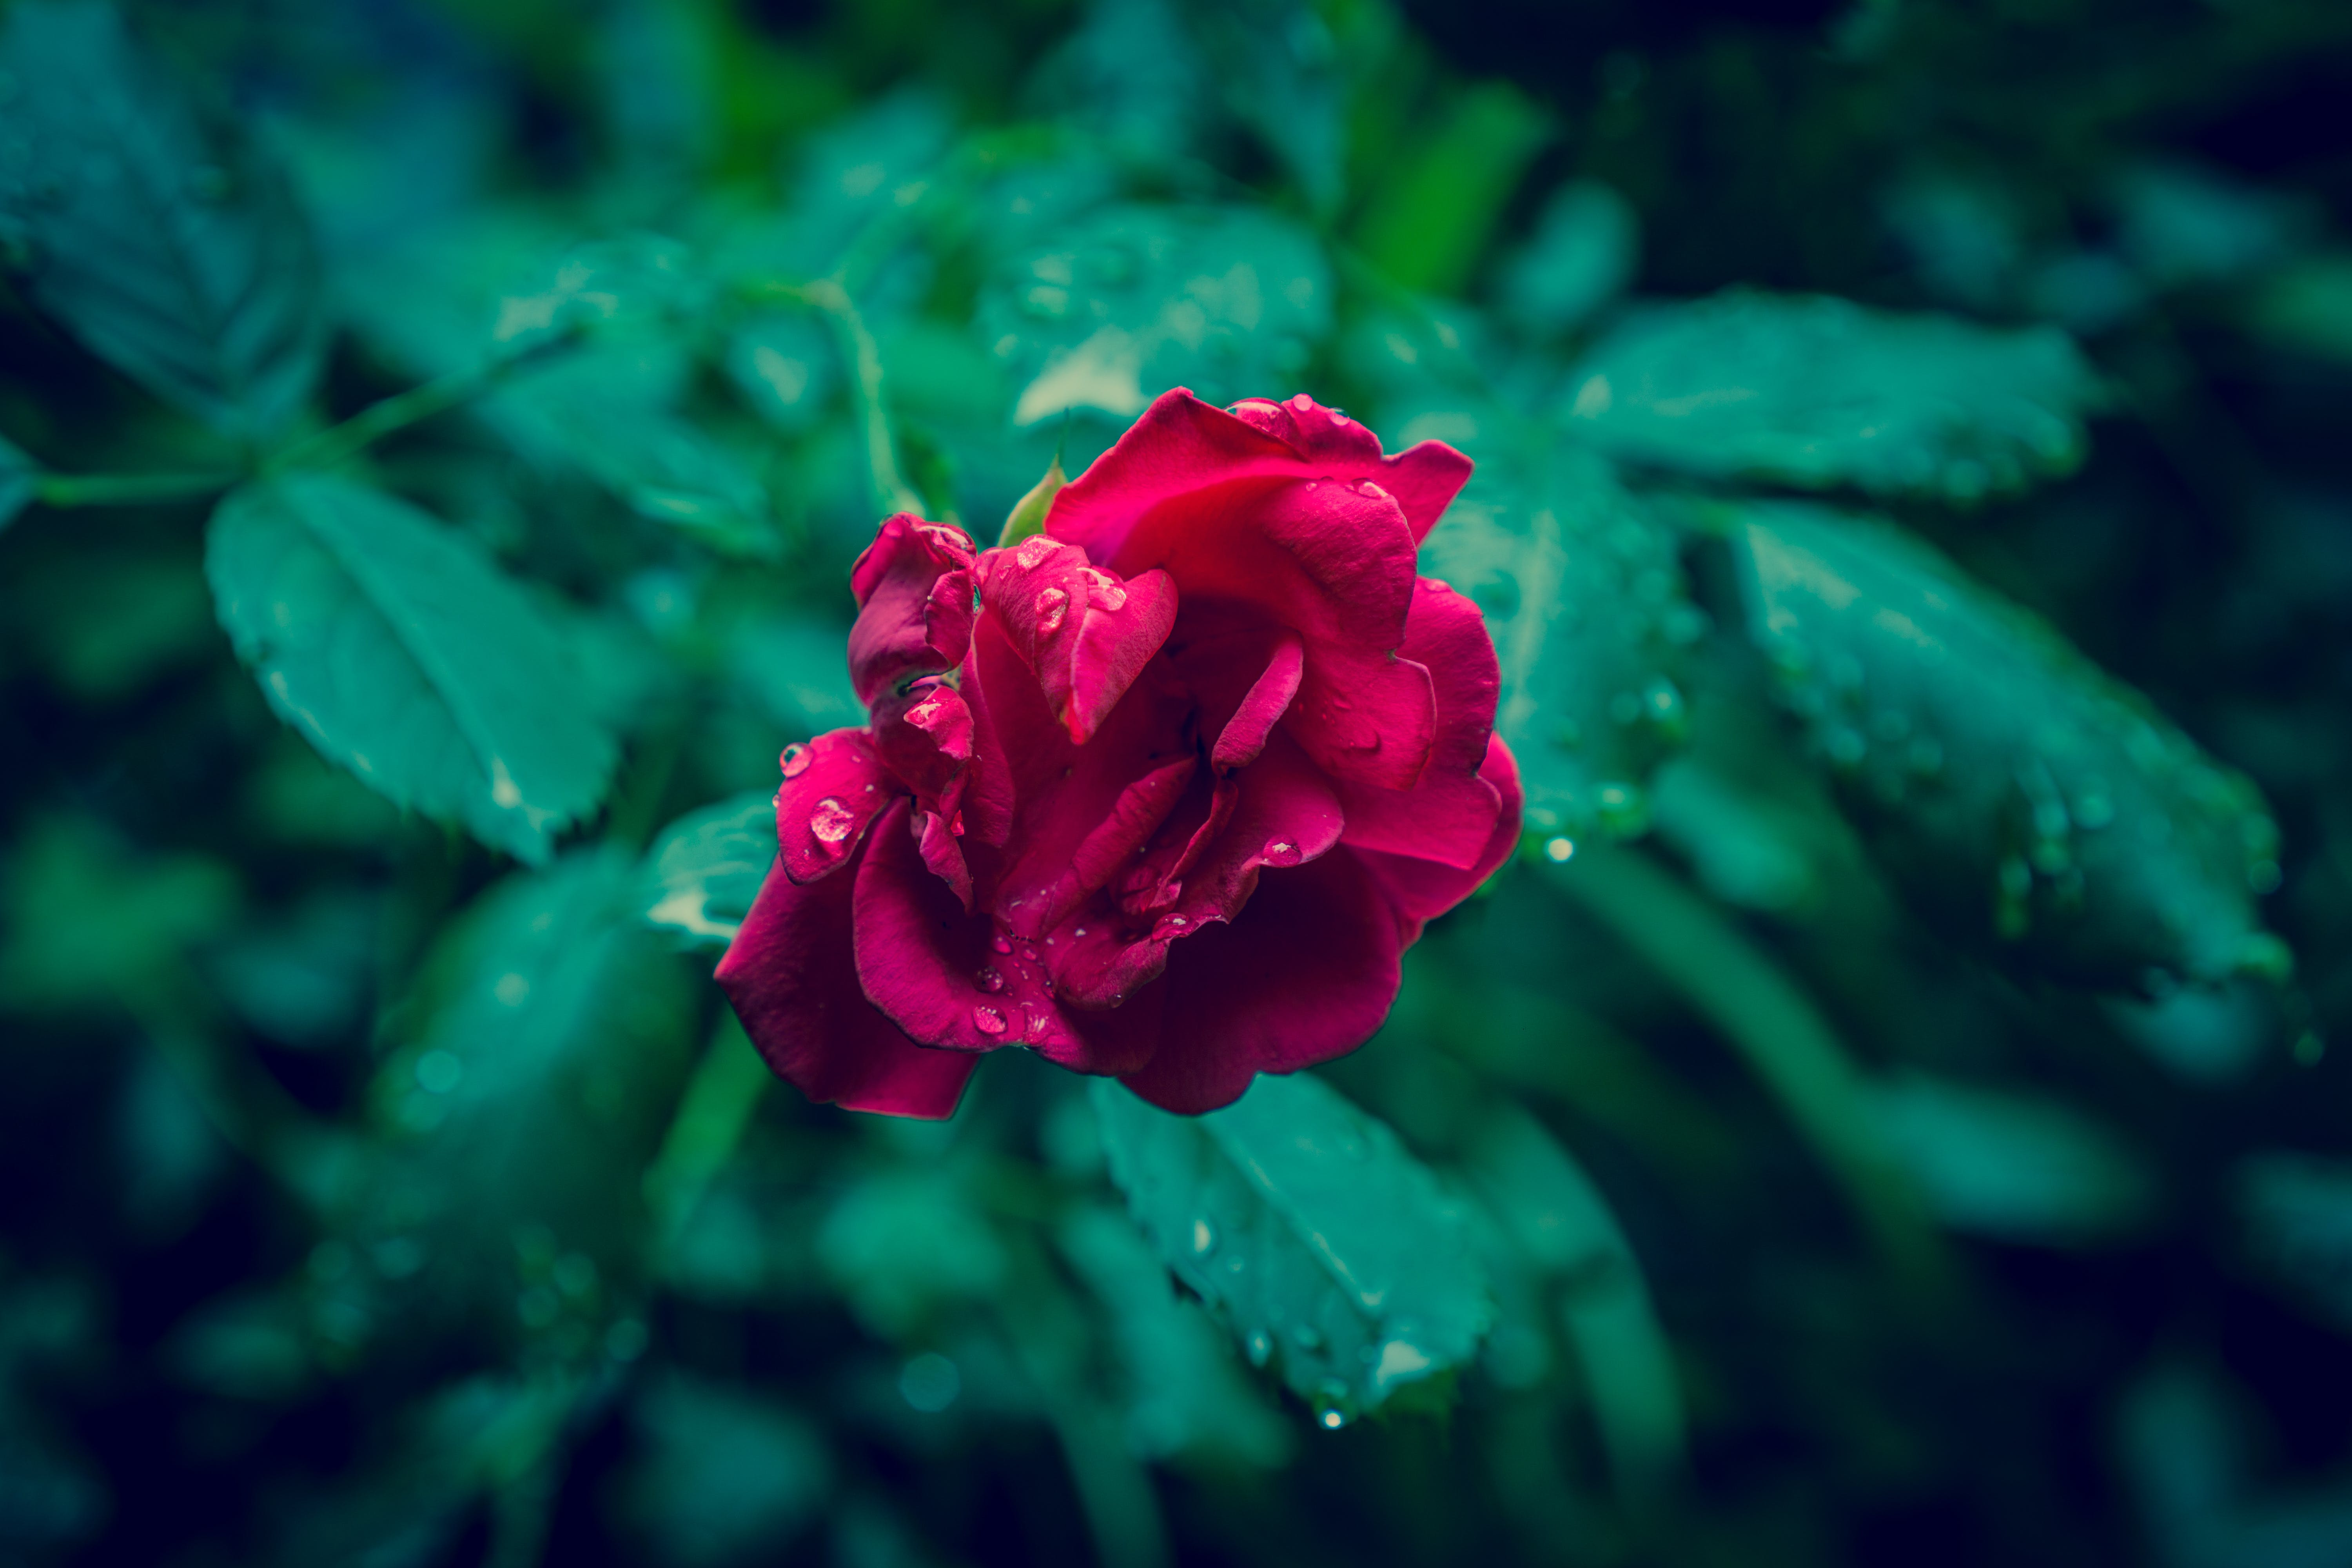 flower, rain, raindrops